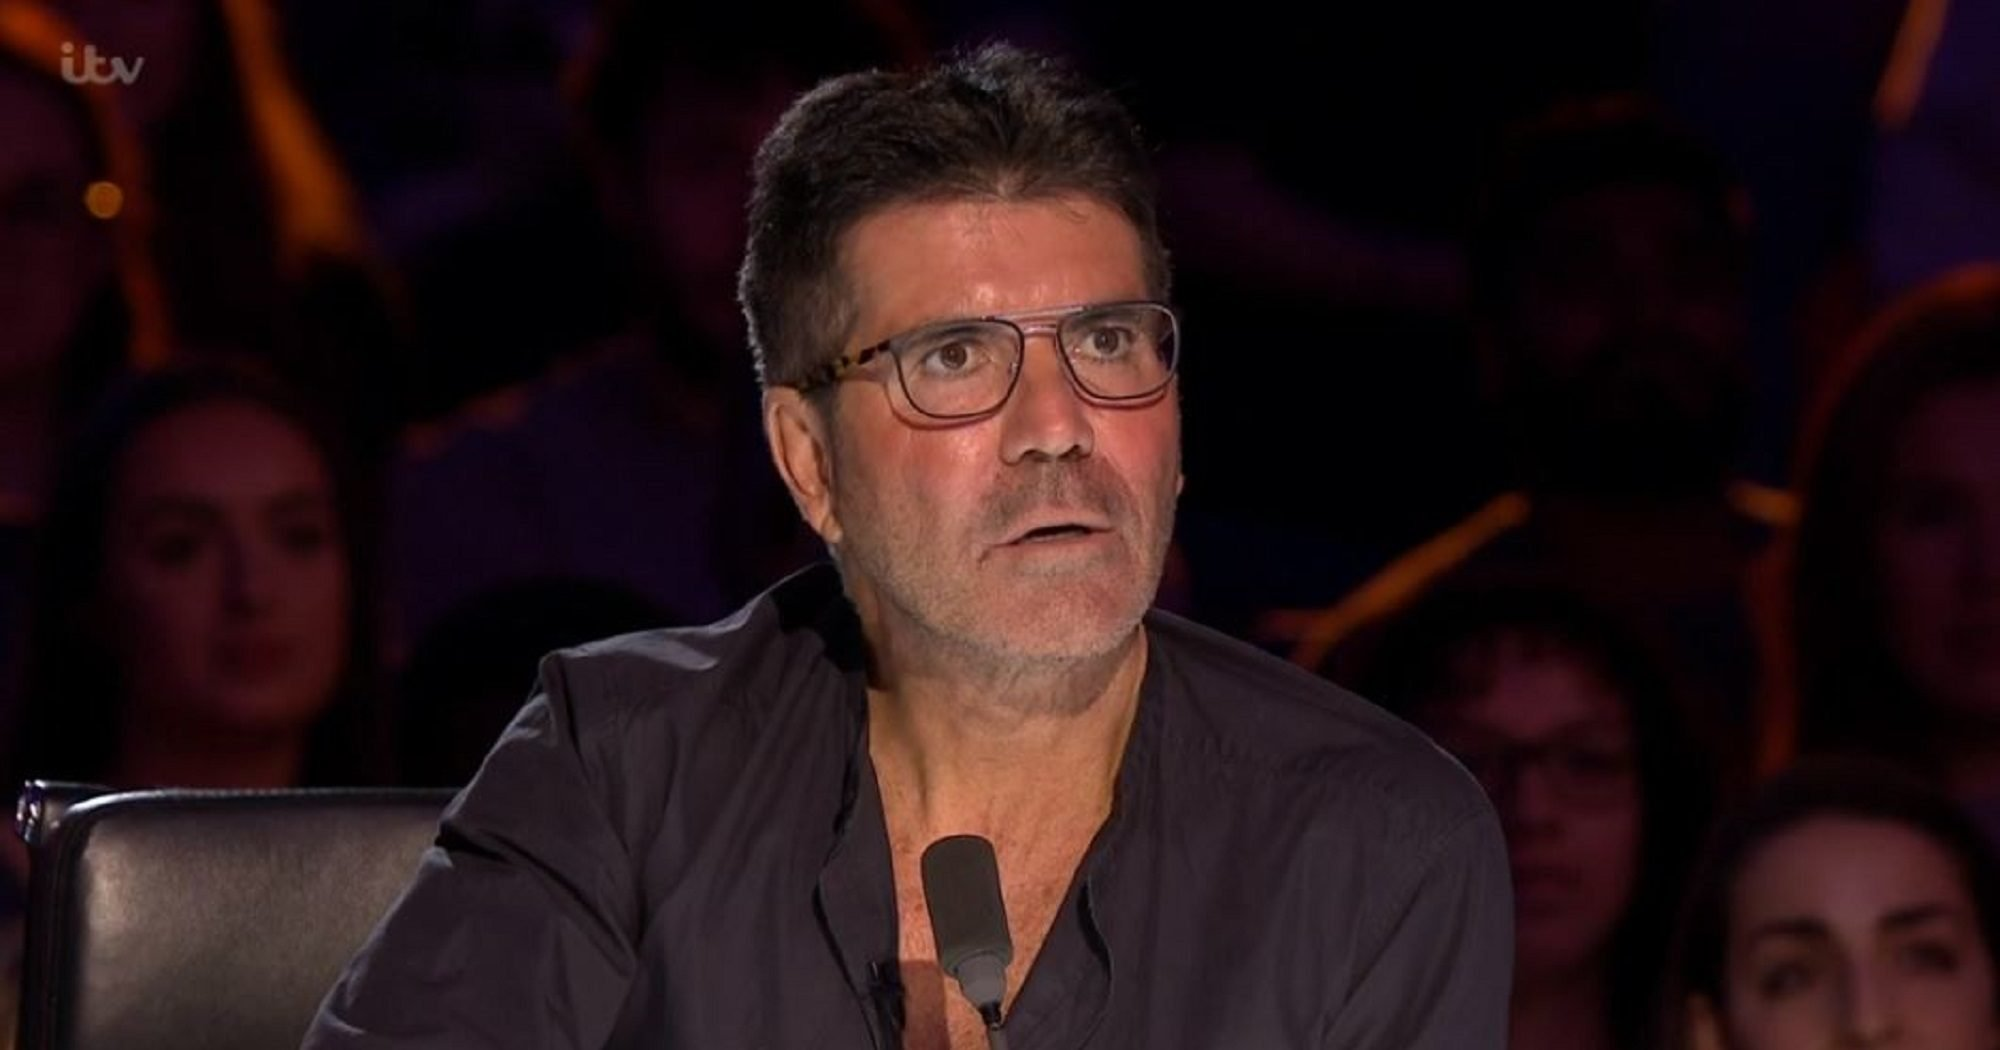 BGT fans left baffled by Simon Cowell's signature